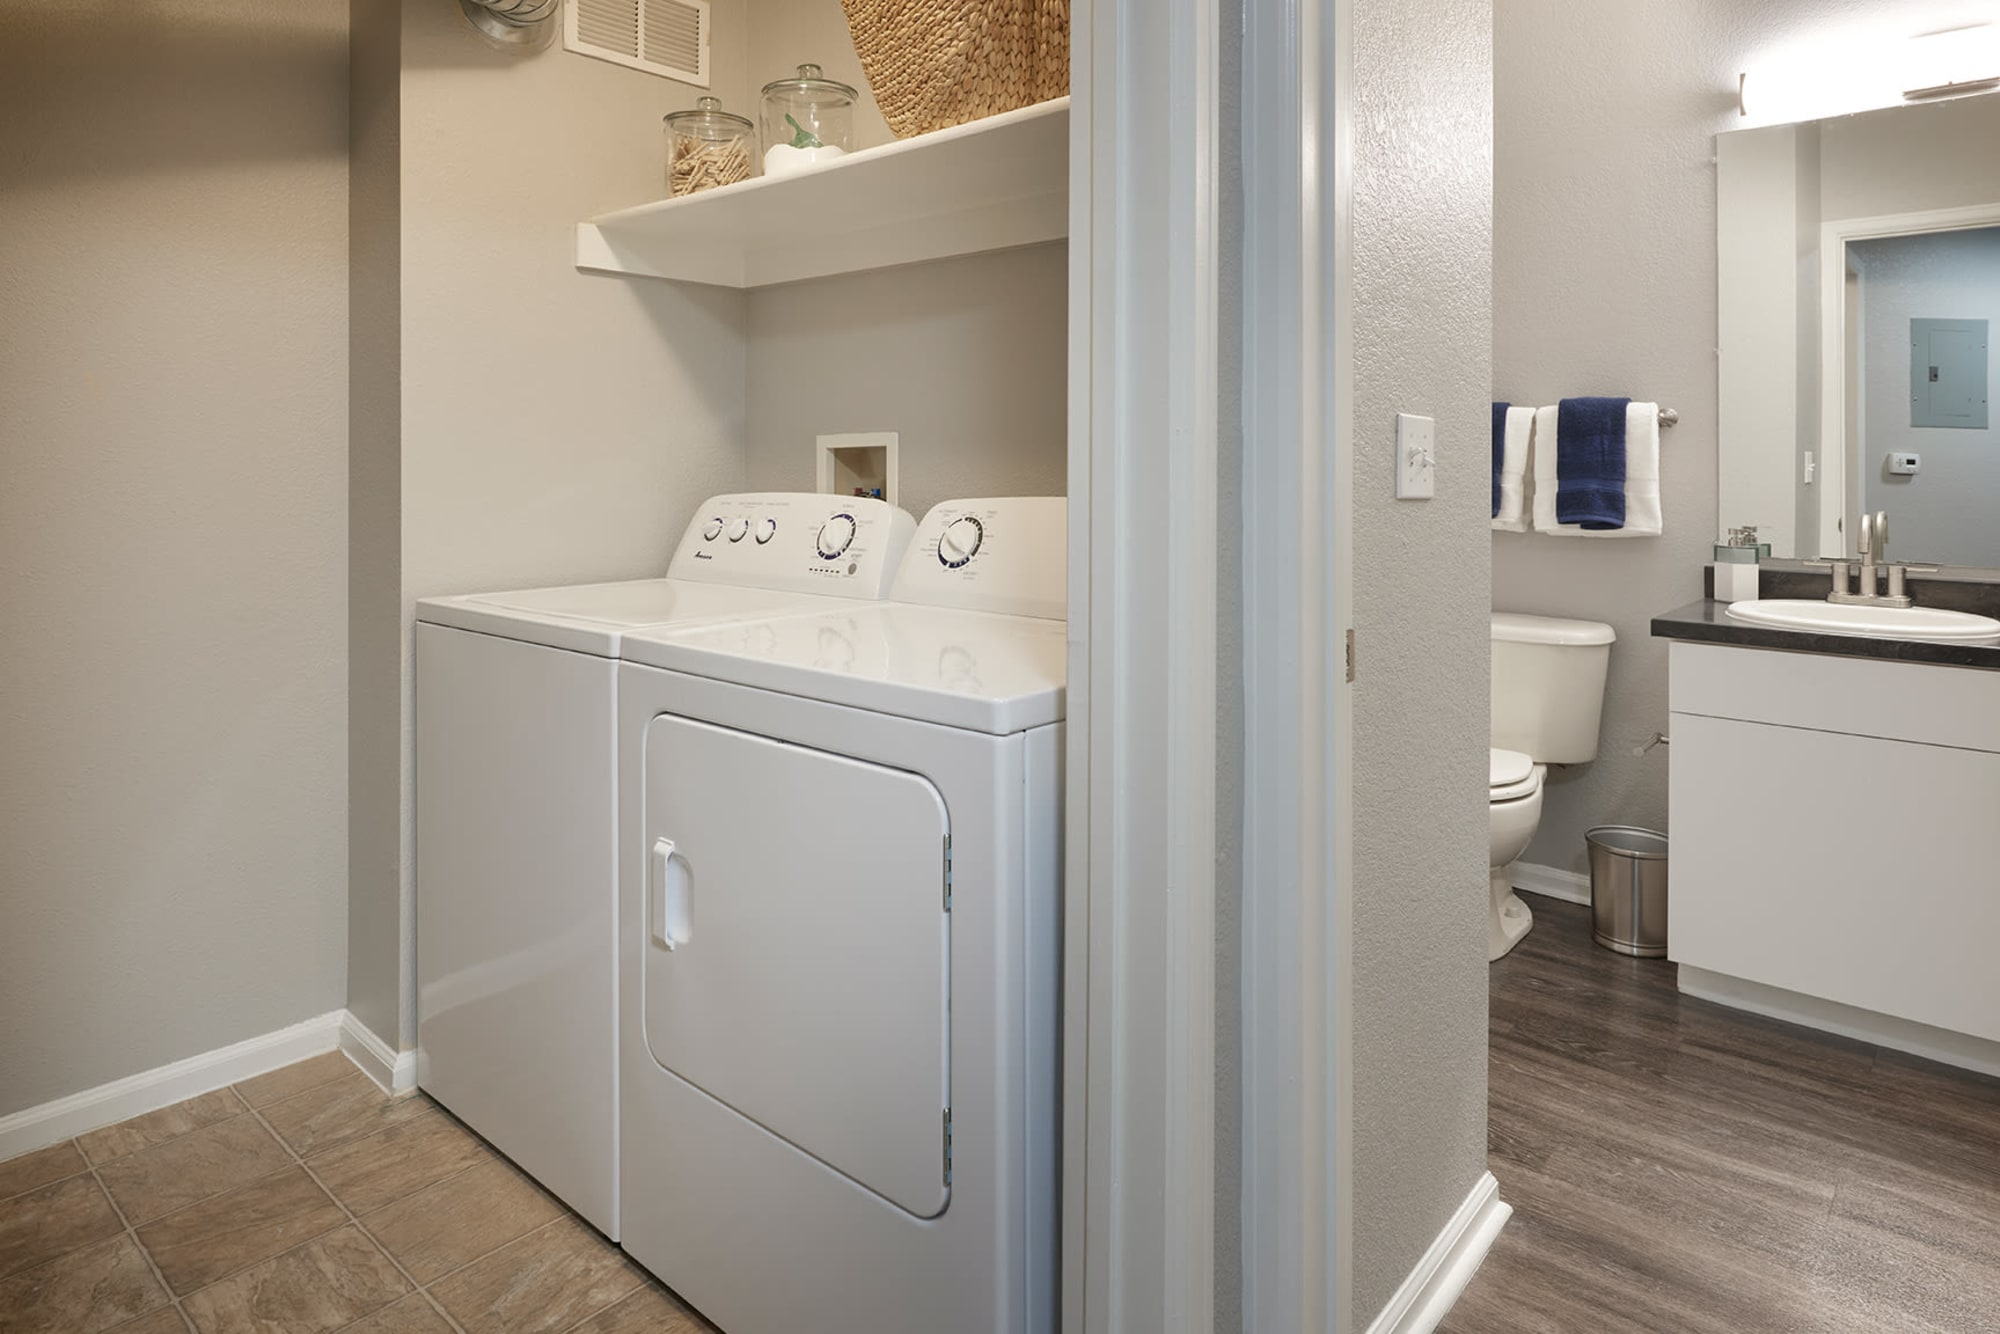 A washer and dryer combo at Crestone Apartments in Aurora, Colorado